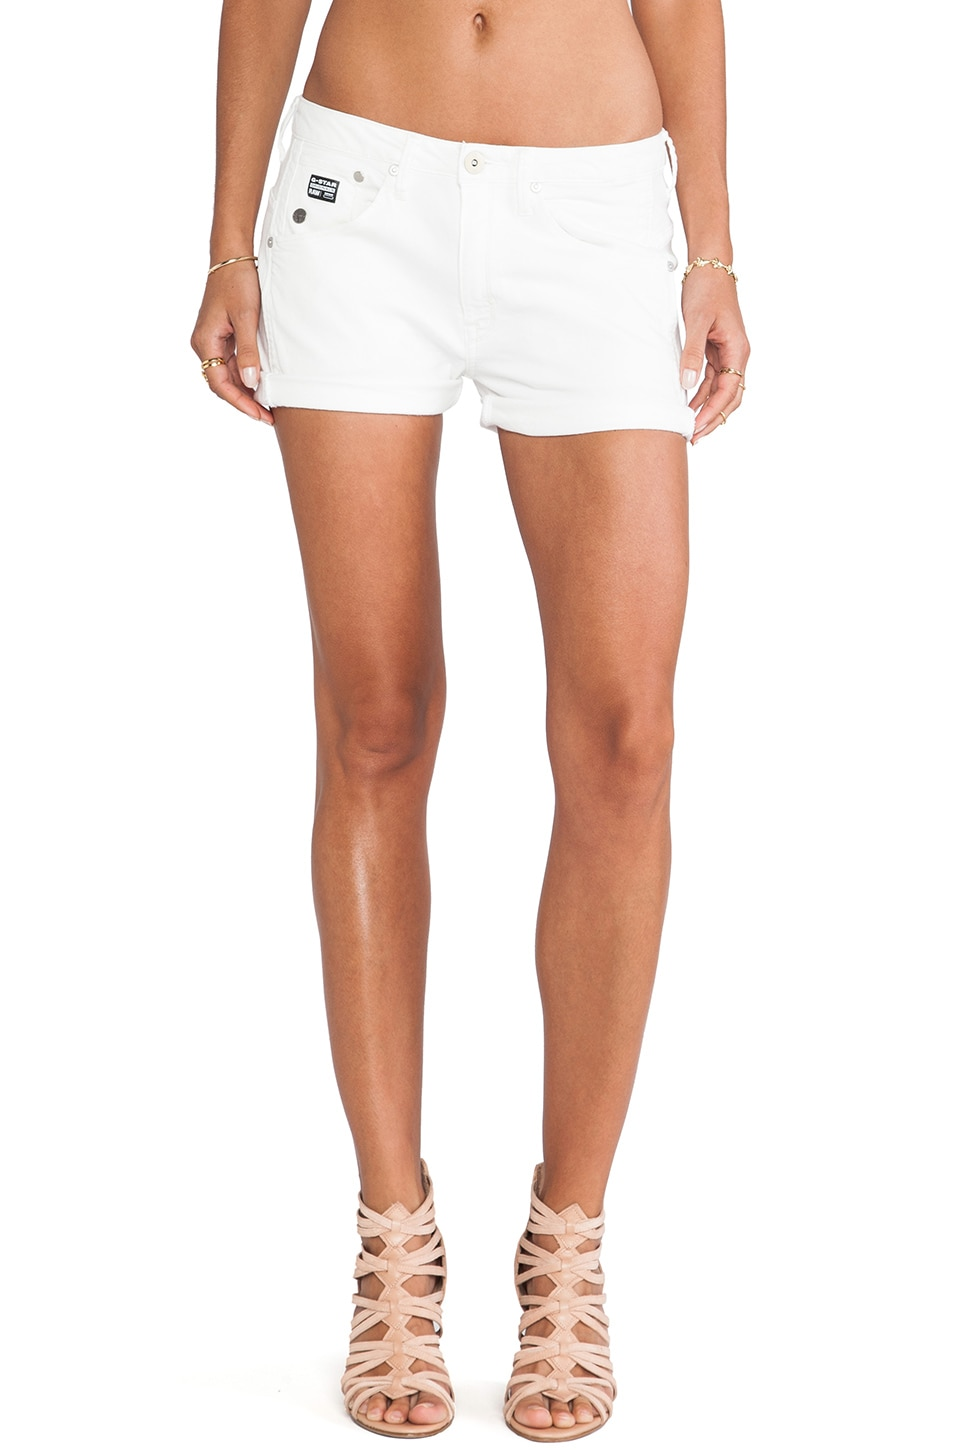 G-Star Arc BFF Short in White Talc Lt Aged